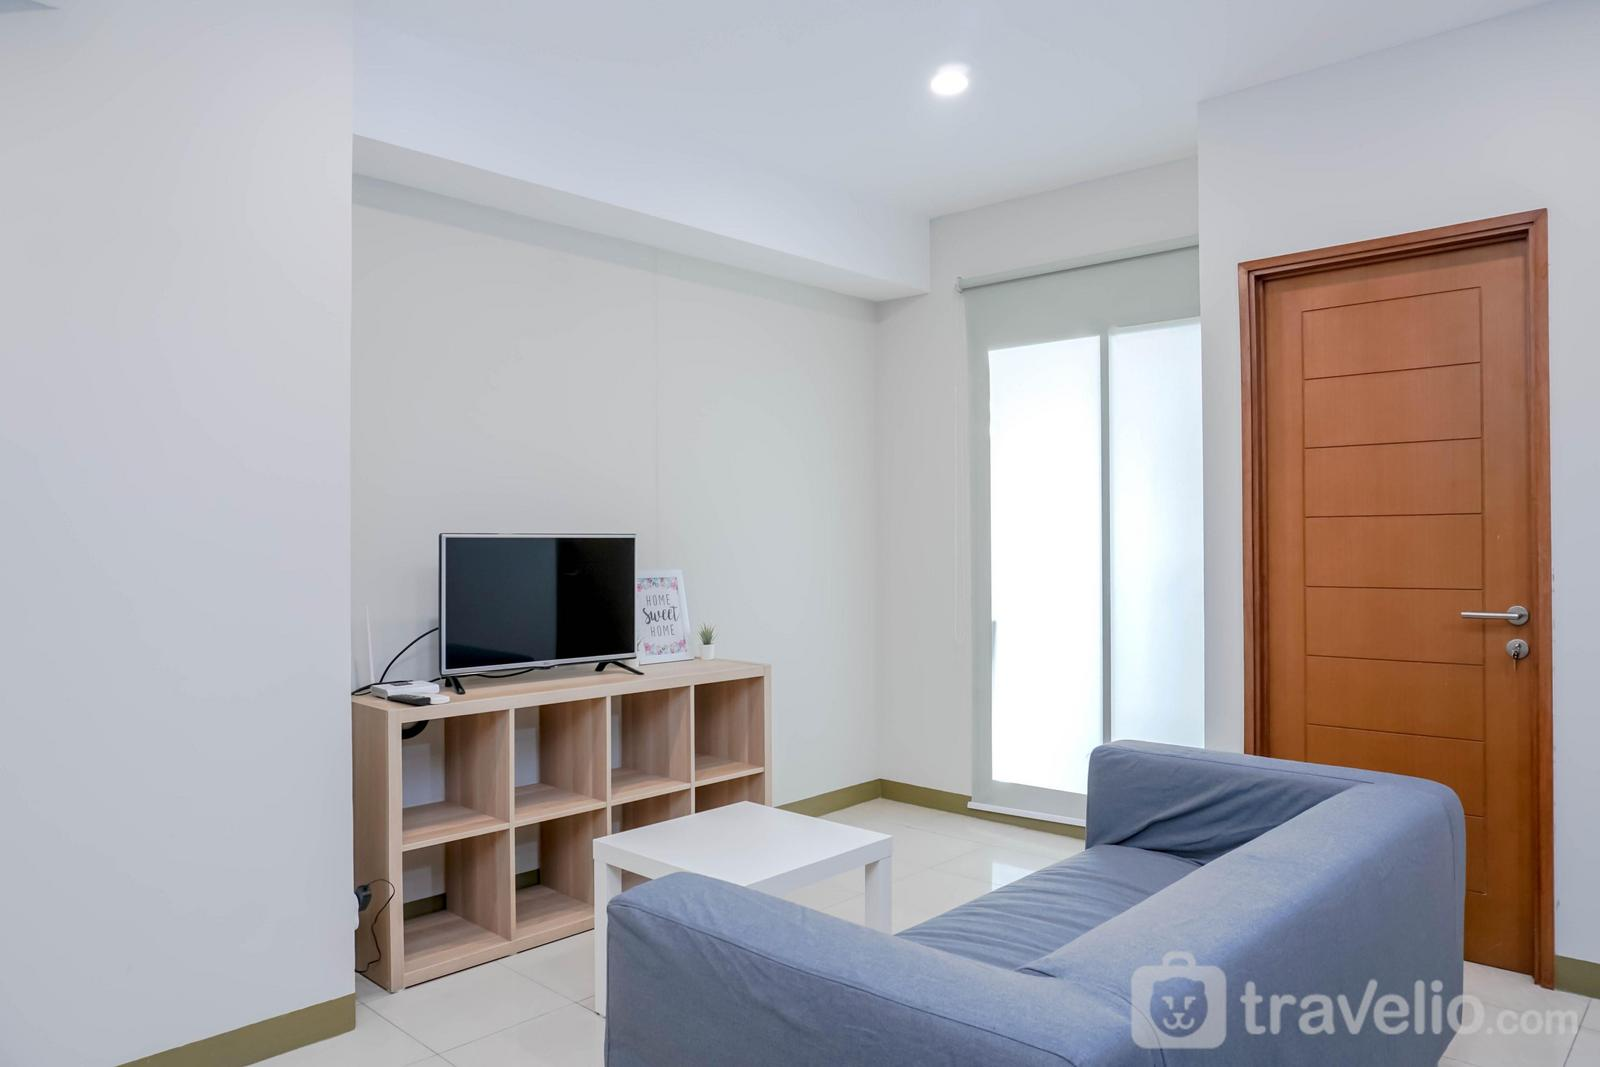 Gading Greenhill Pegangsaan - New Furnished 2BR Gading Greenhill Apartment By Travelio